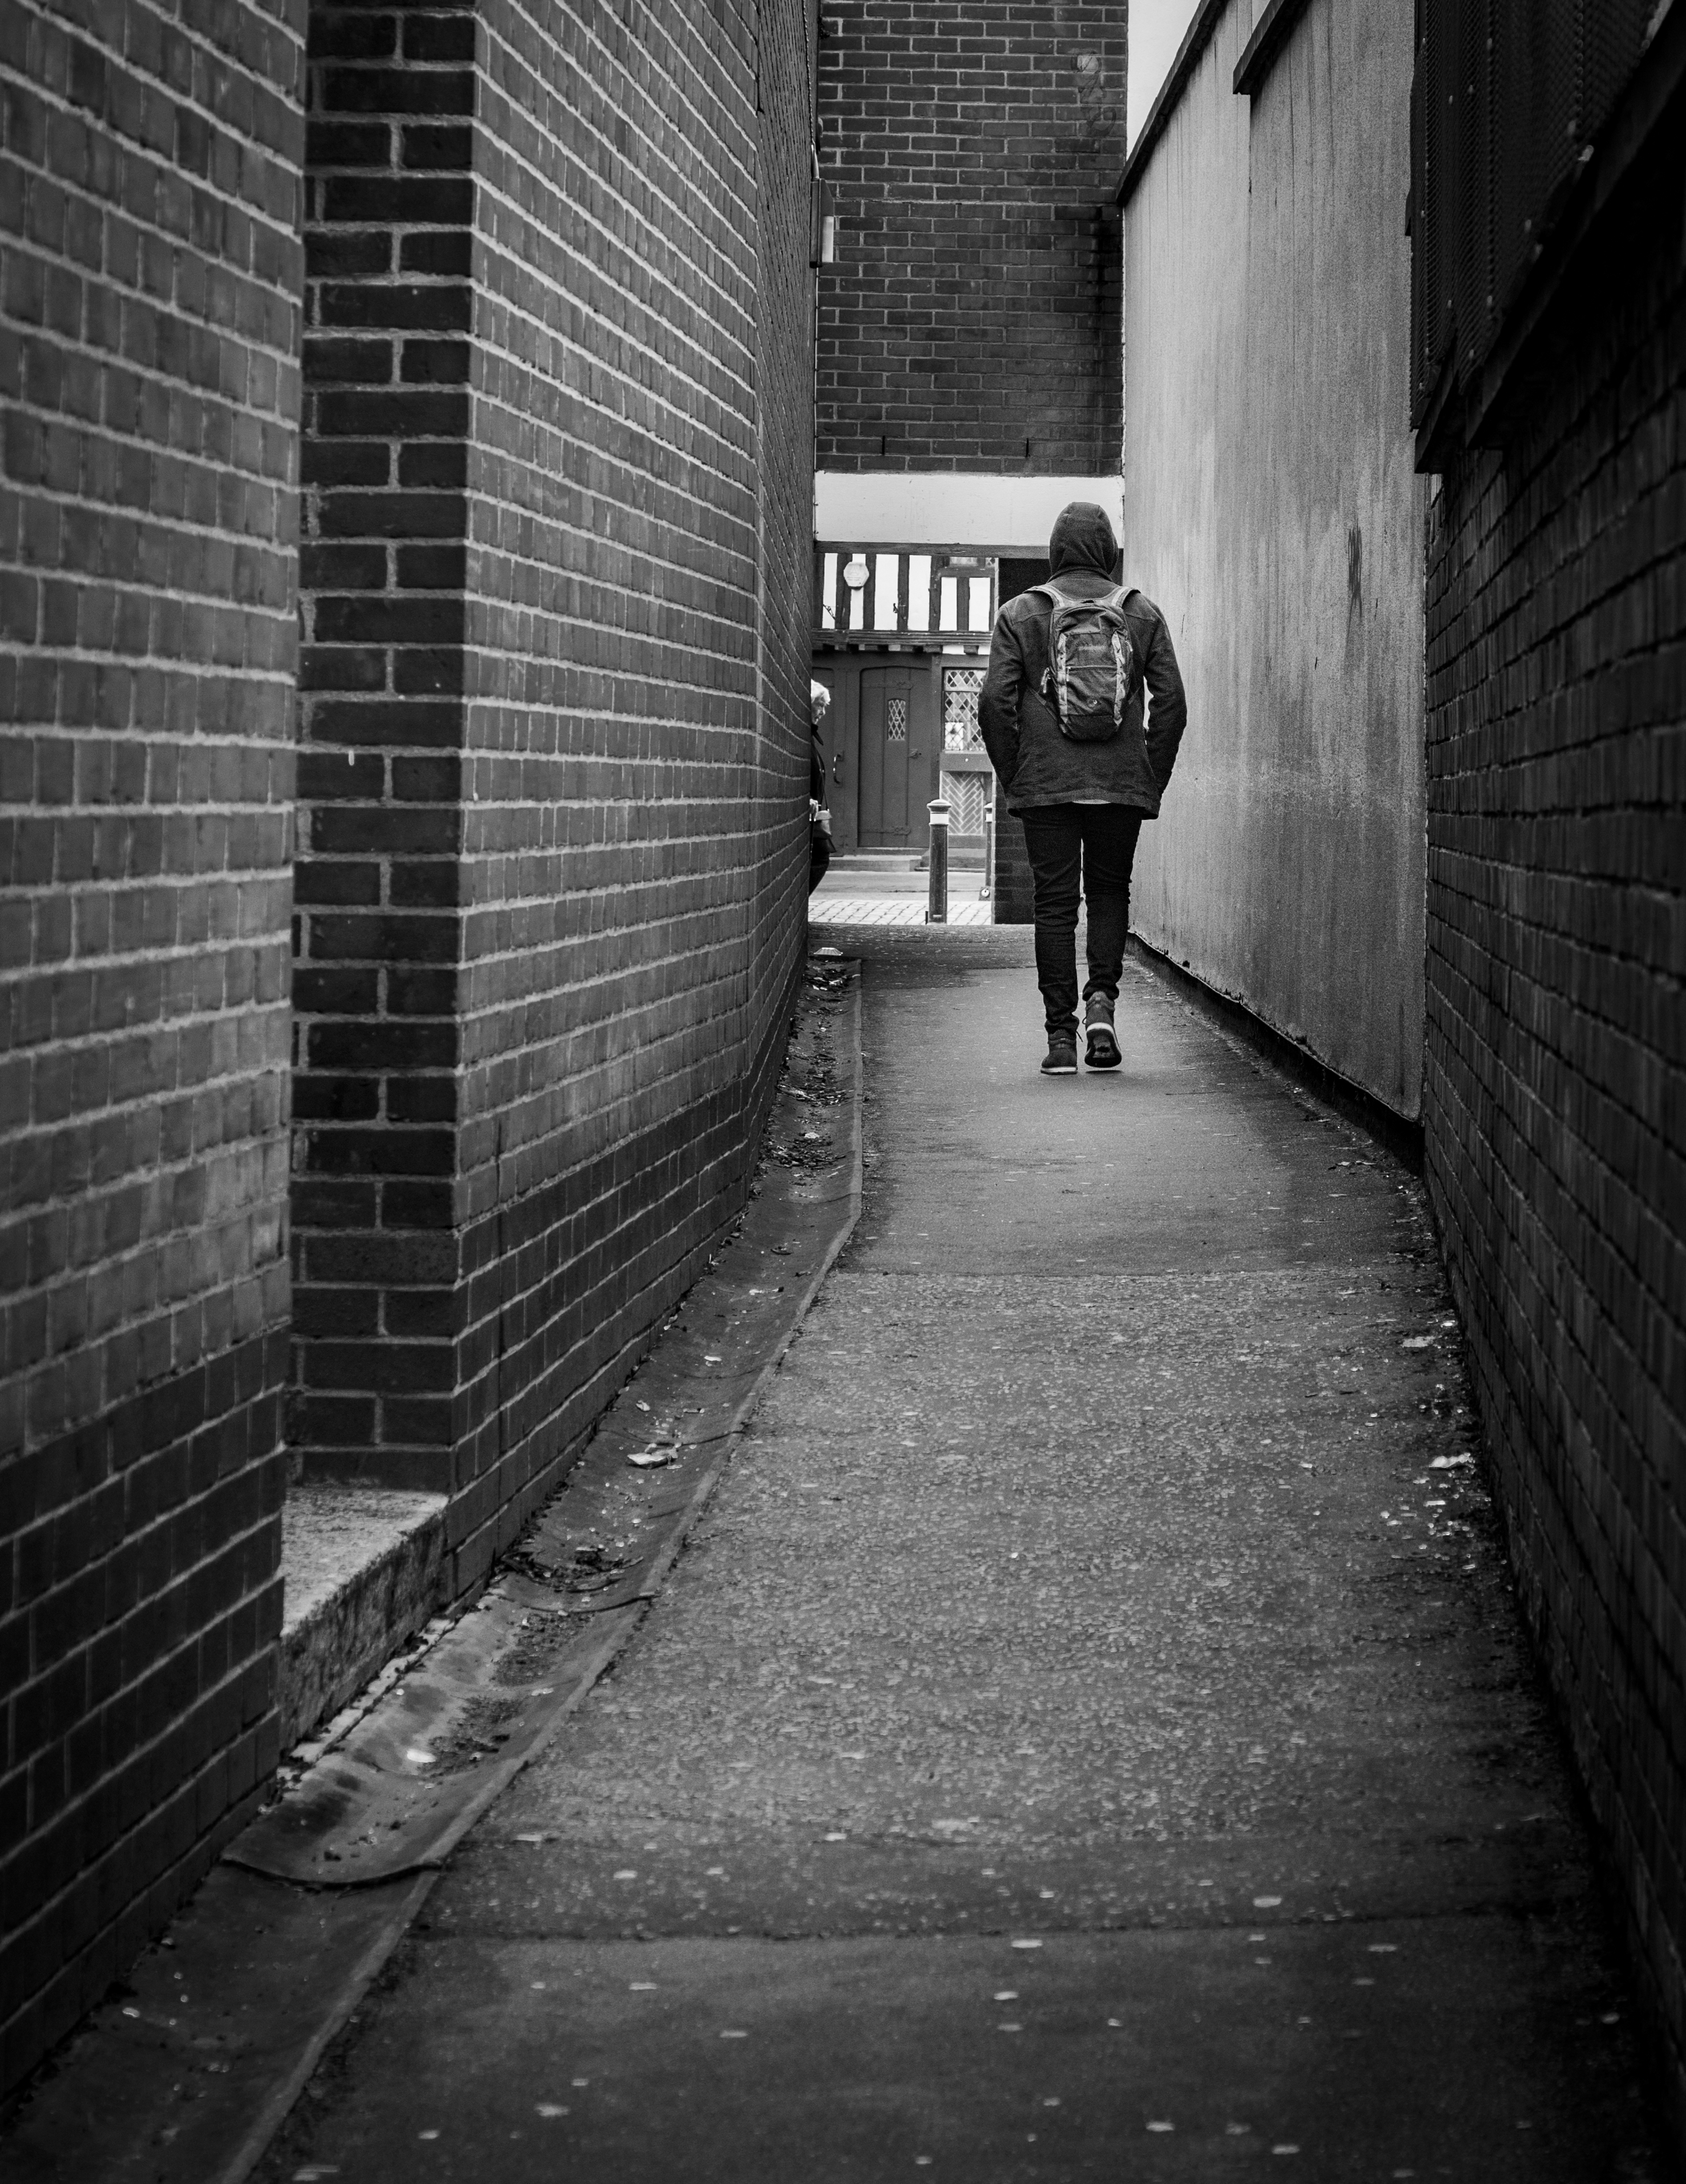 Young man walking through an alley in black & white-2.jpg